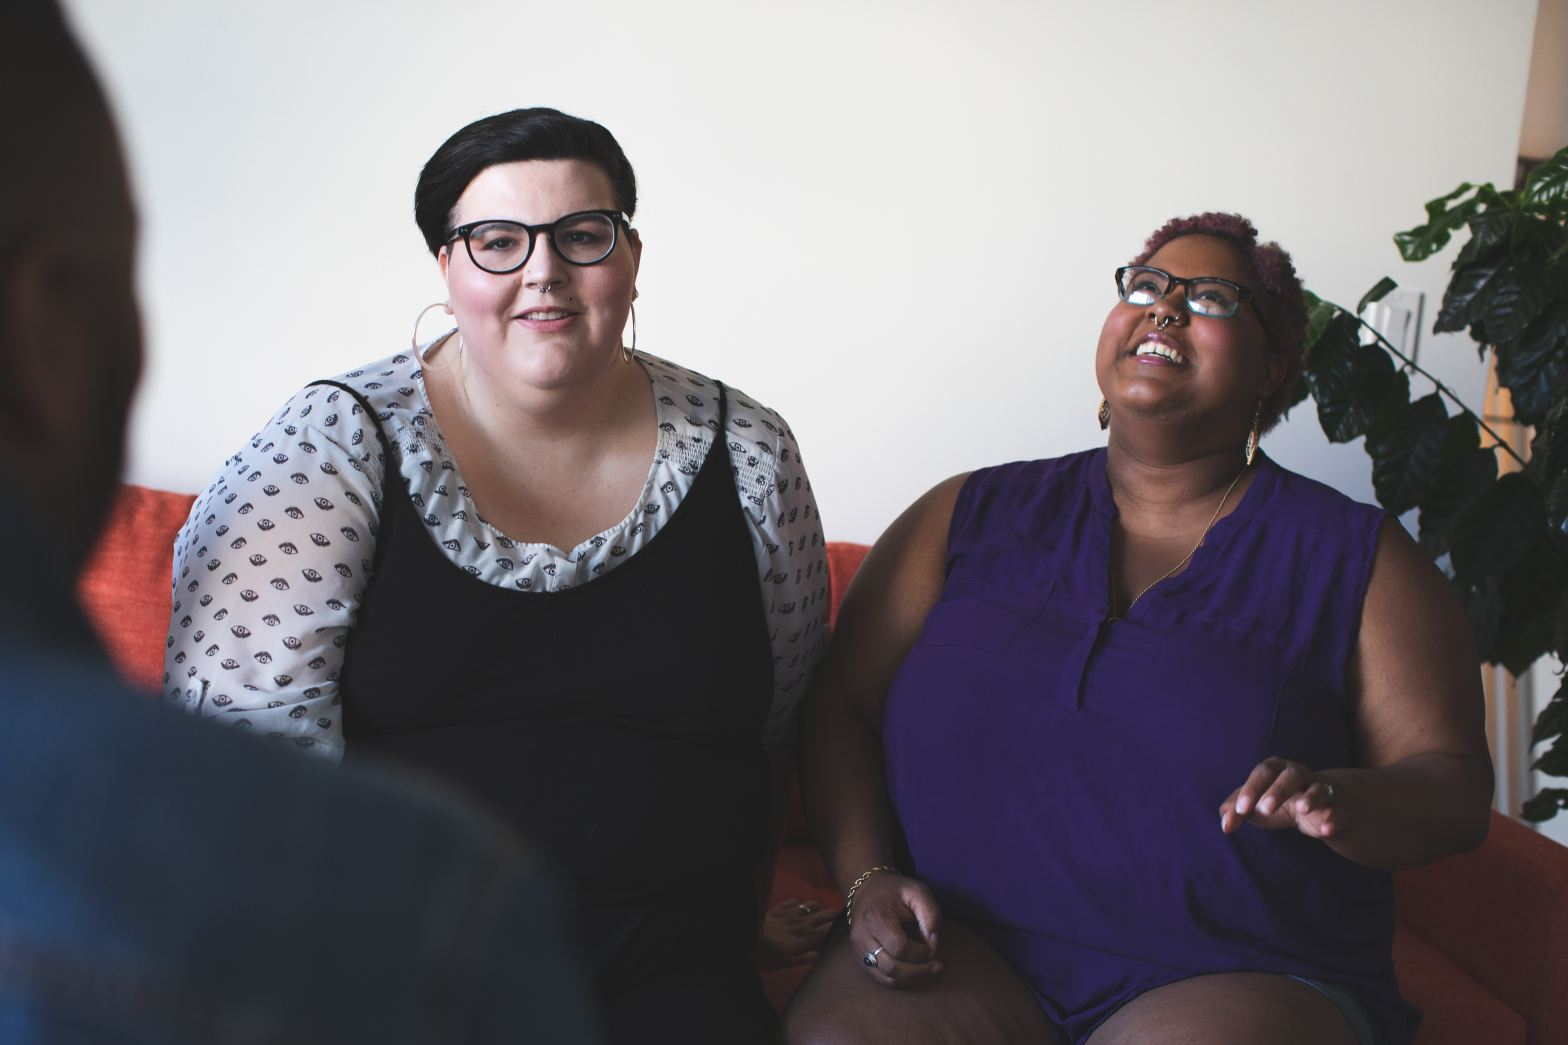 A couple is shown in a therapy office, sitting on a couch together. The white, plus size, androgynous member of the couple is wearing glasses and seems to be talking while their partner, a brown, plus size person wearing glasses throws back their head in laughter.